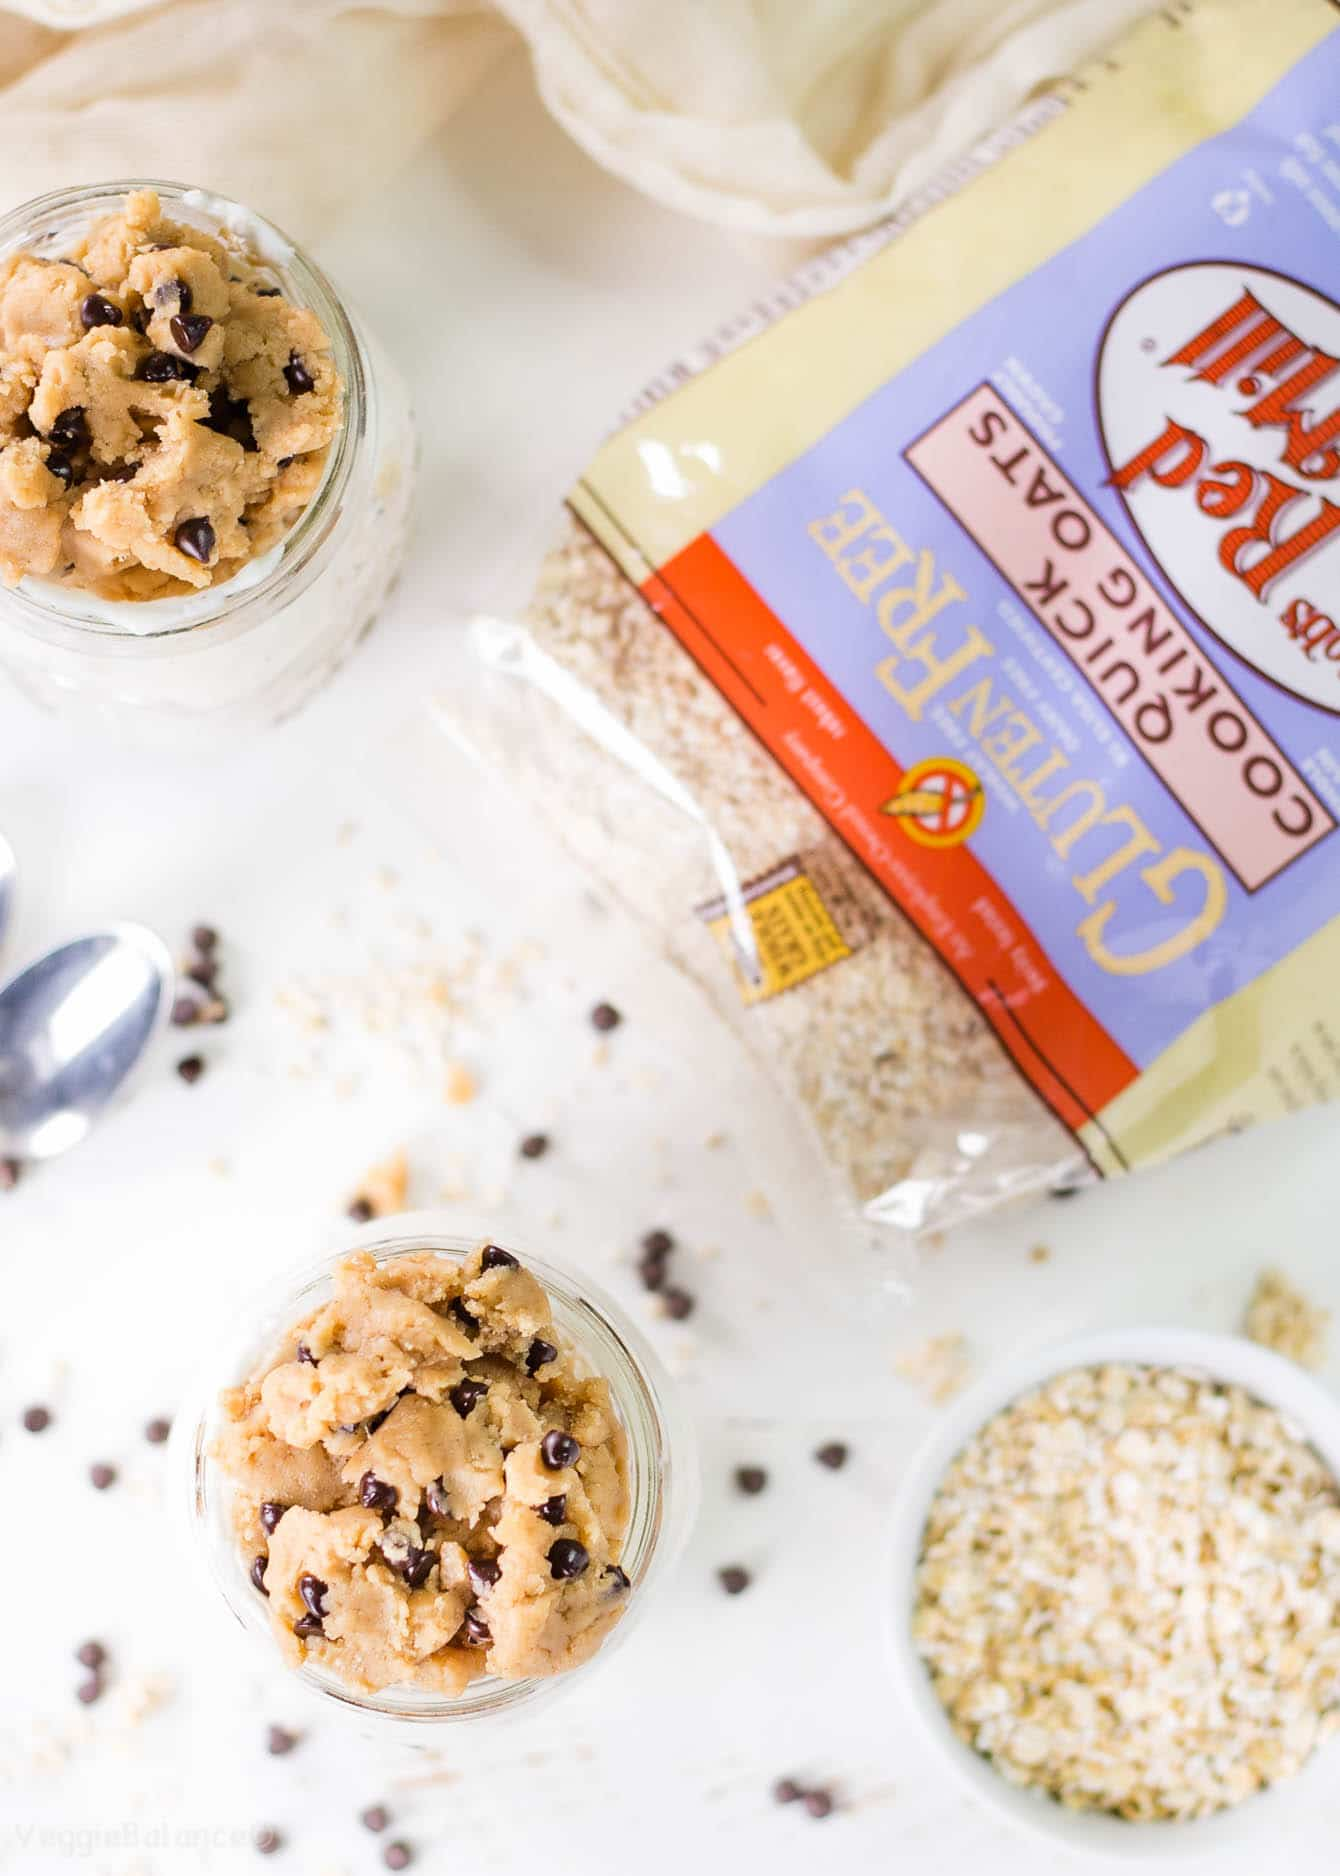 Chocolate Chip Cookie Dough Overnight Oatmeal recipe